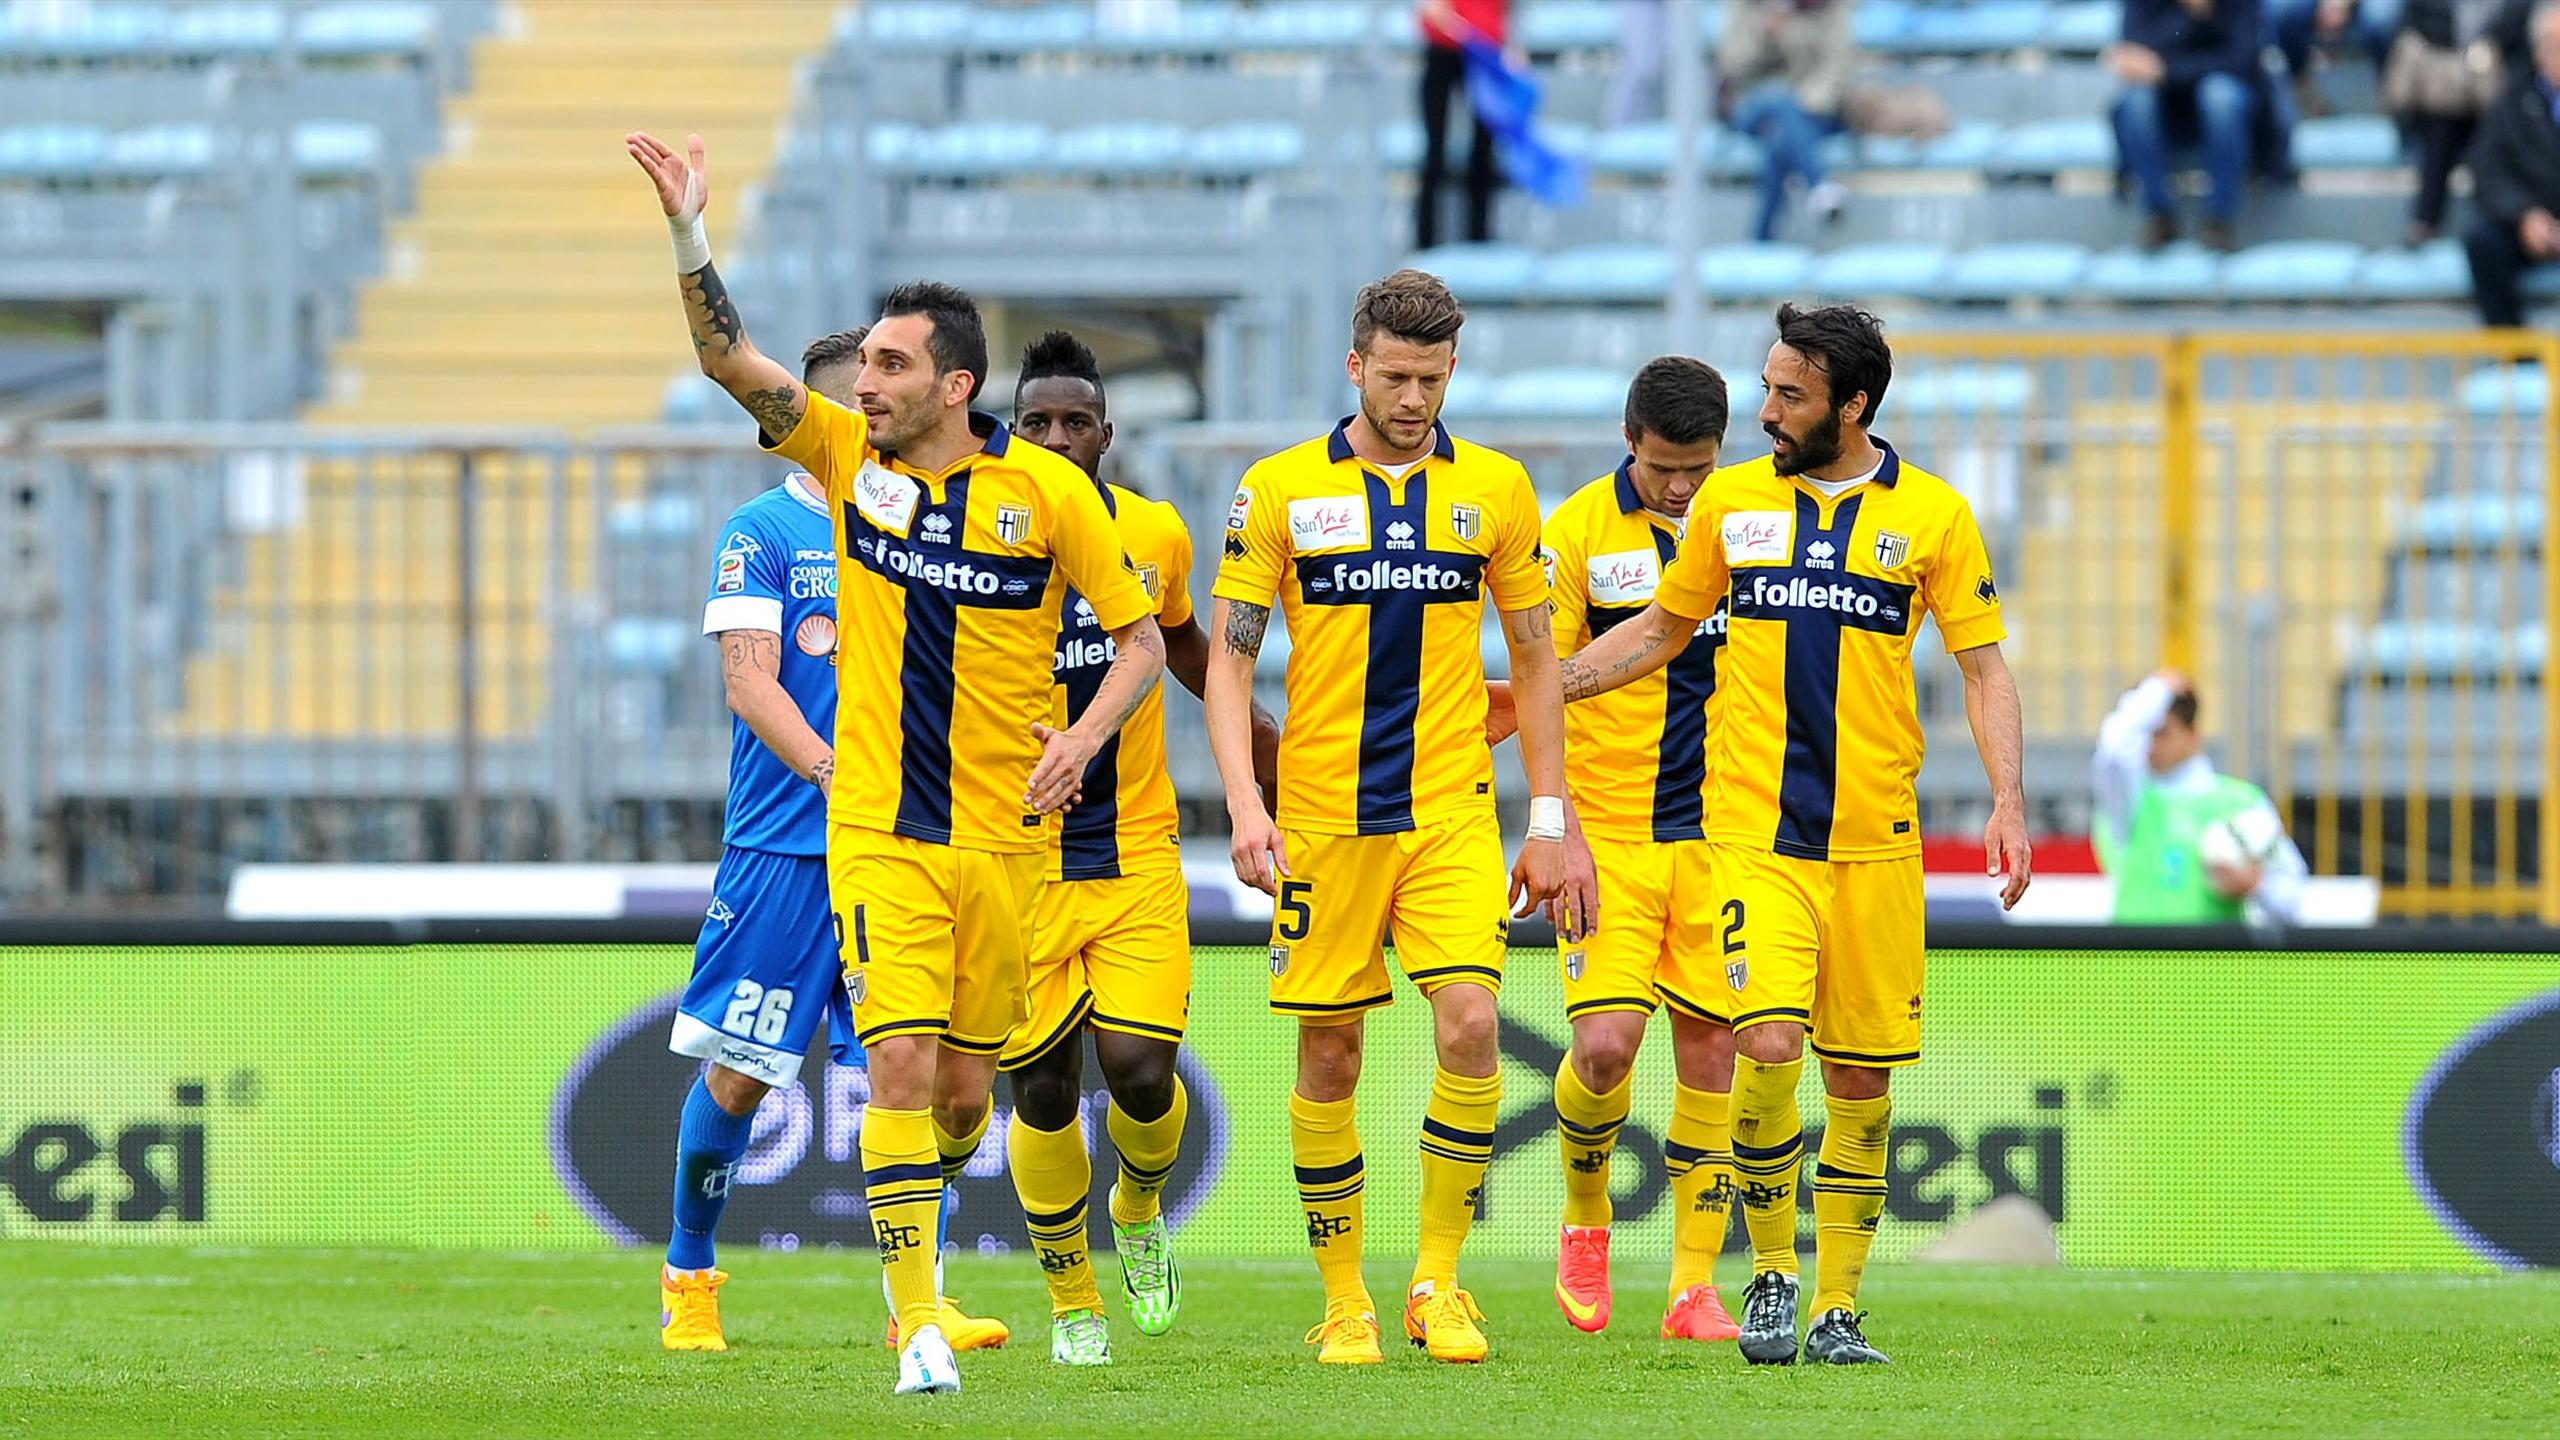 Video: Empoli vs Parma